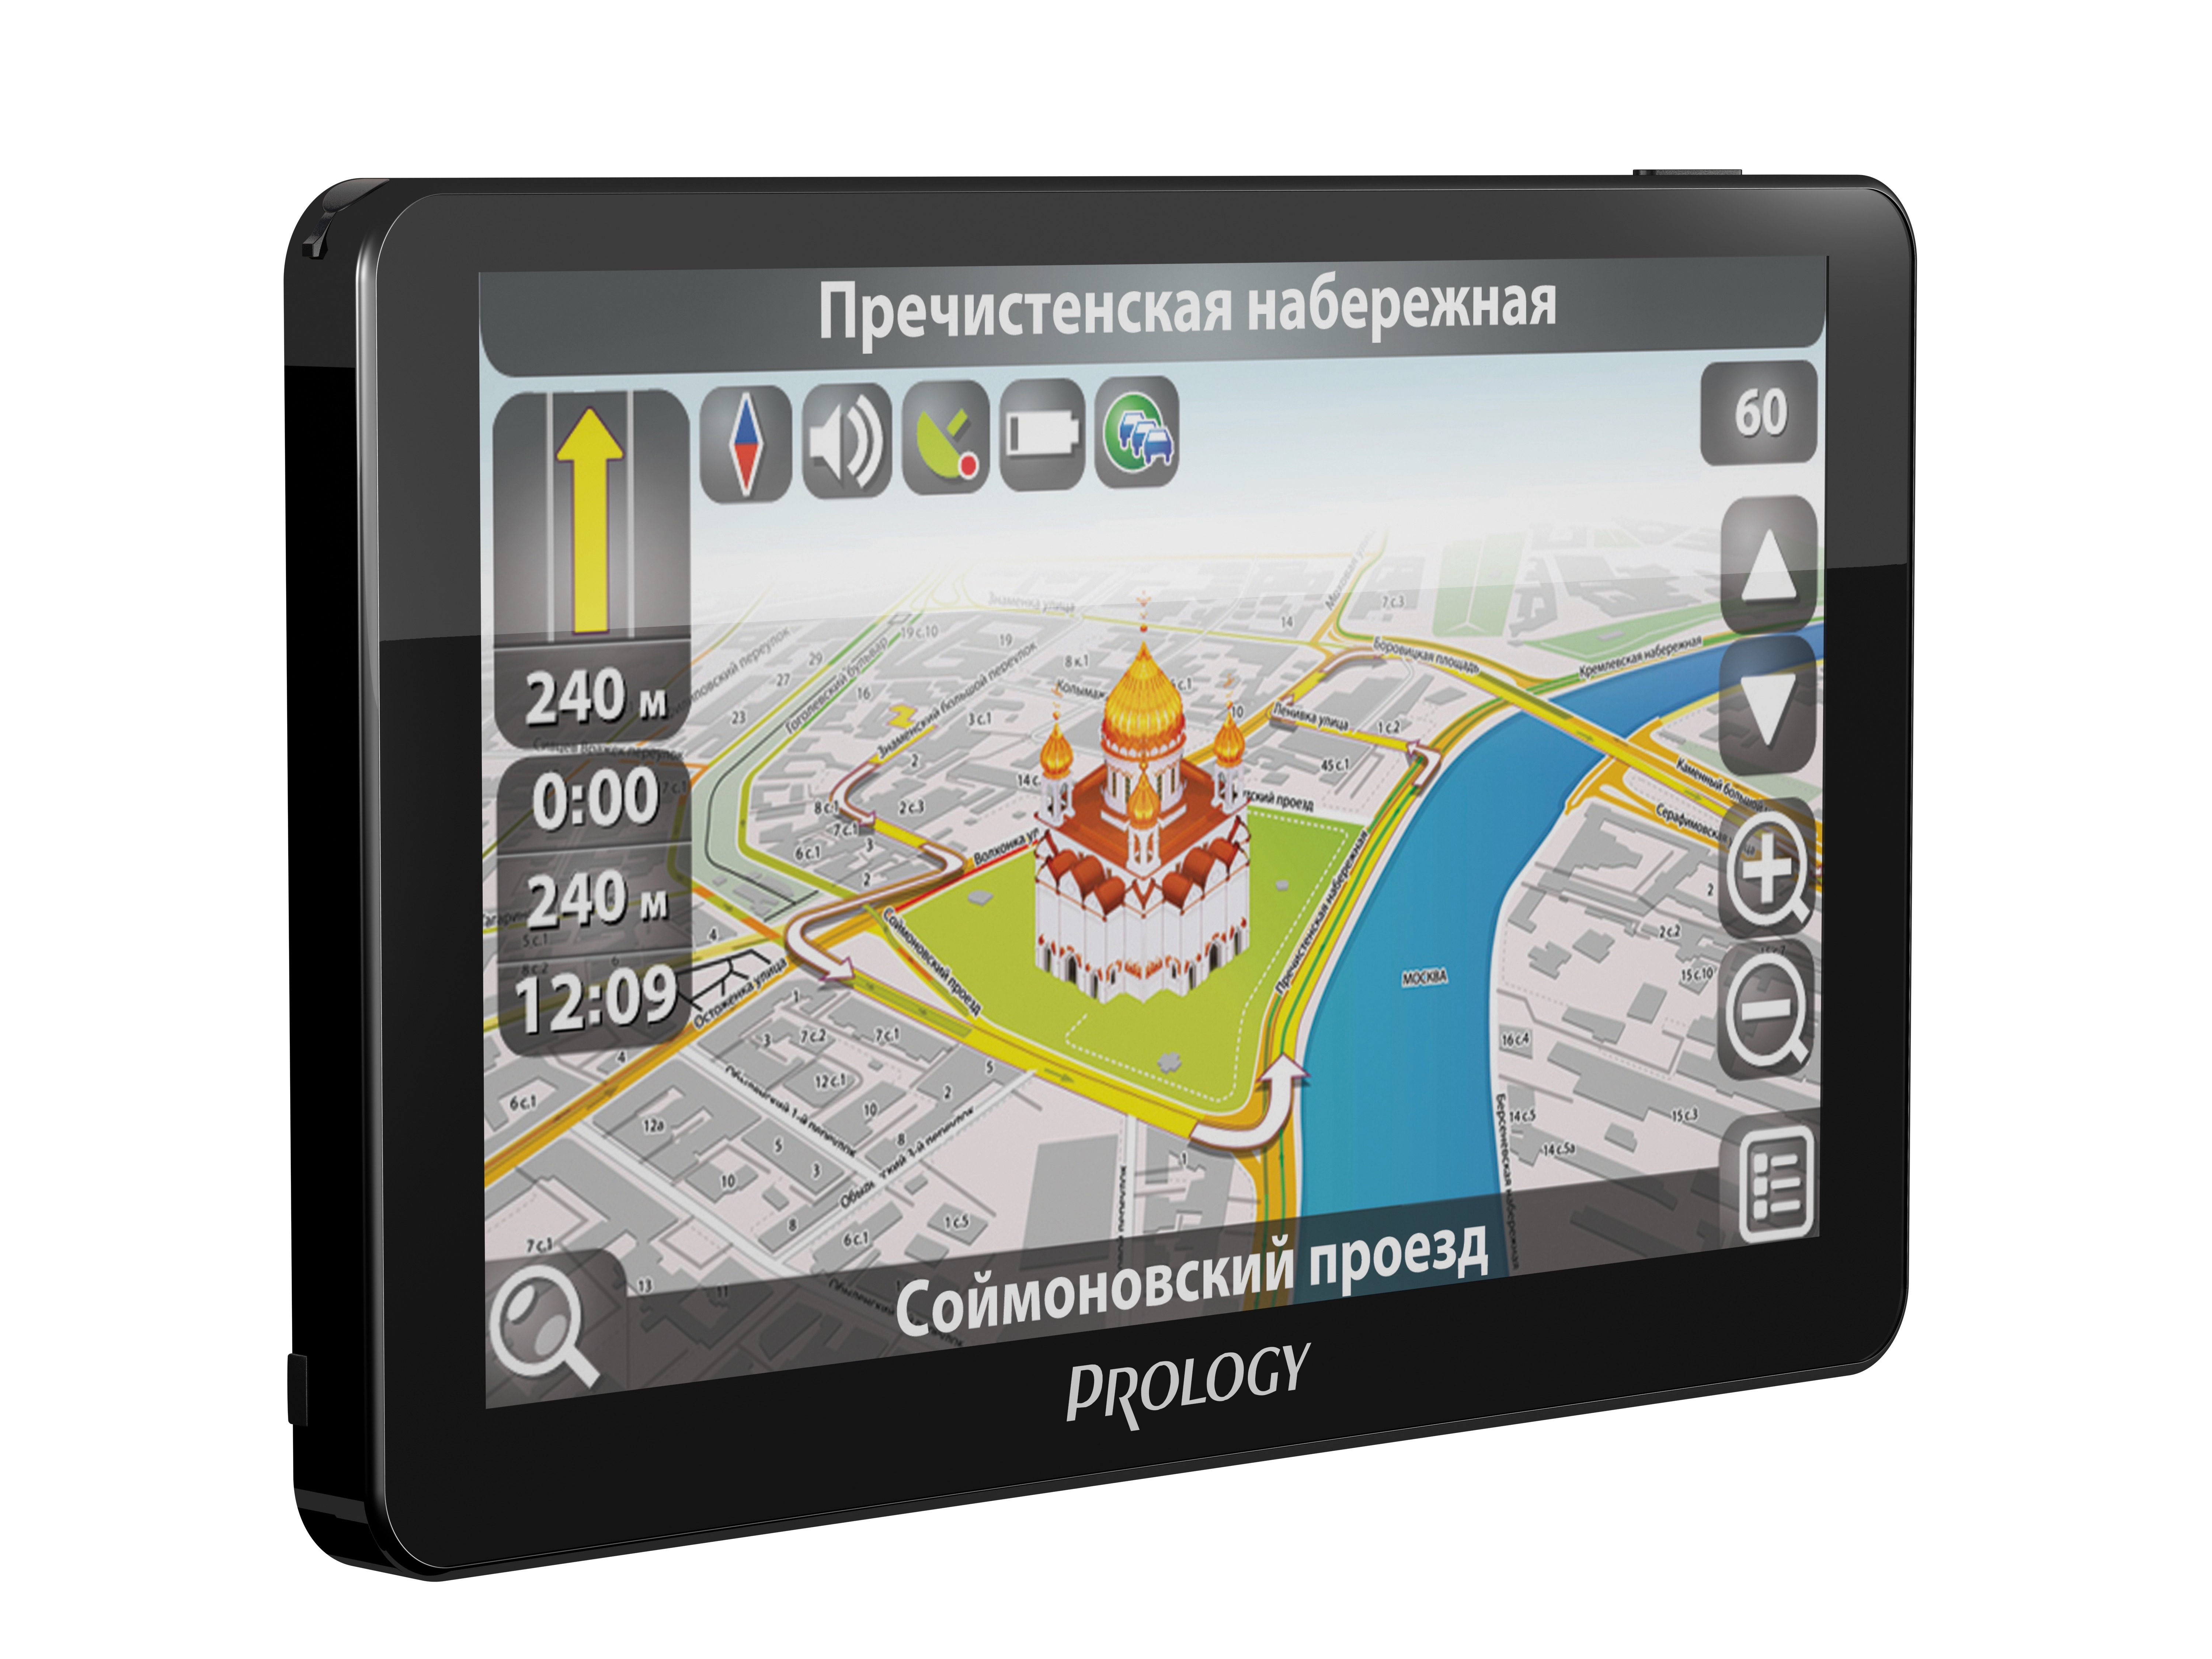 Миниатюра продукта PROLOGY iMap-730Ti